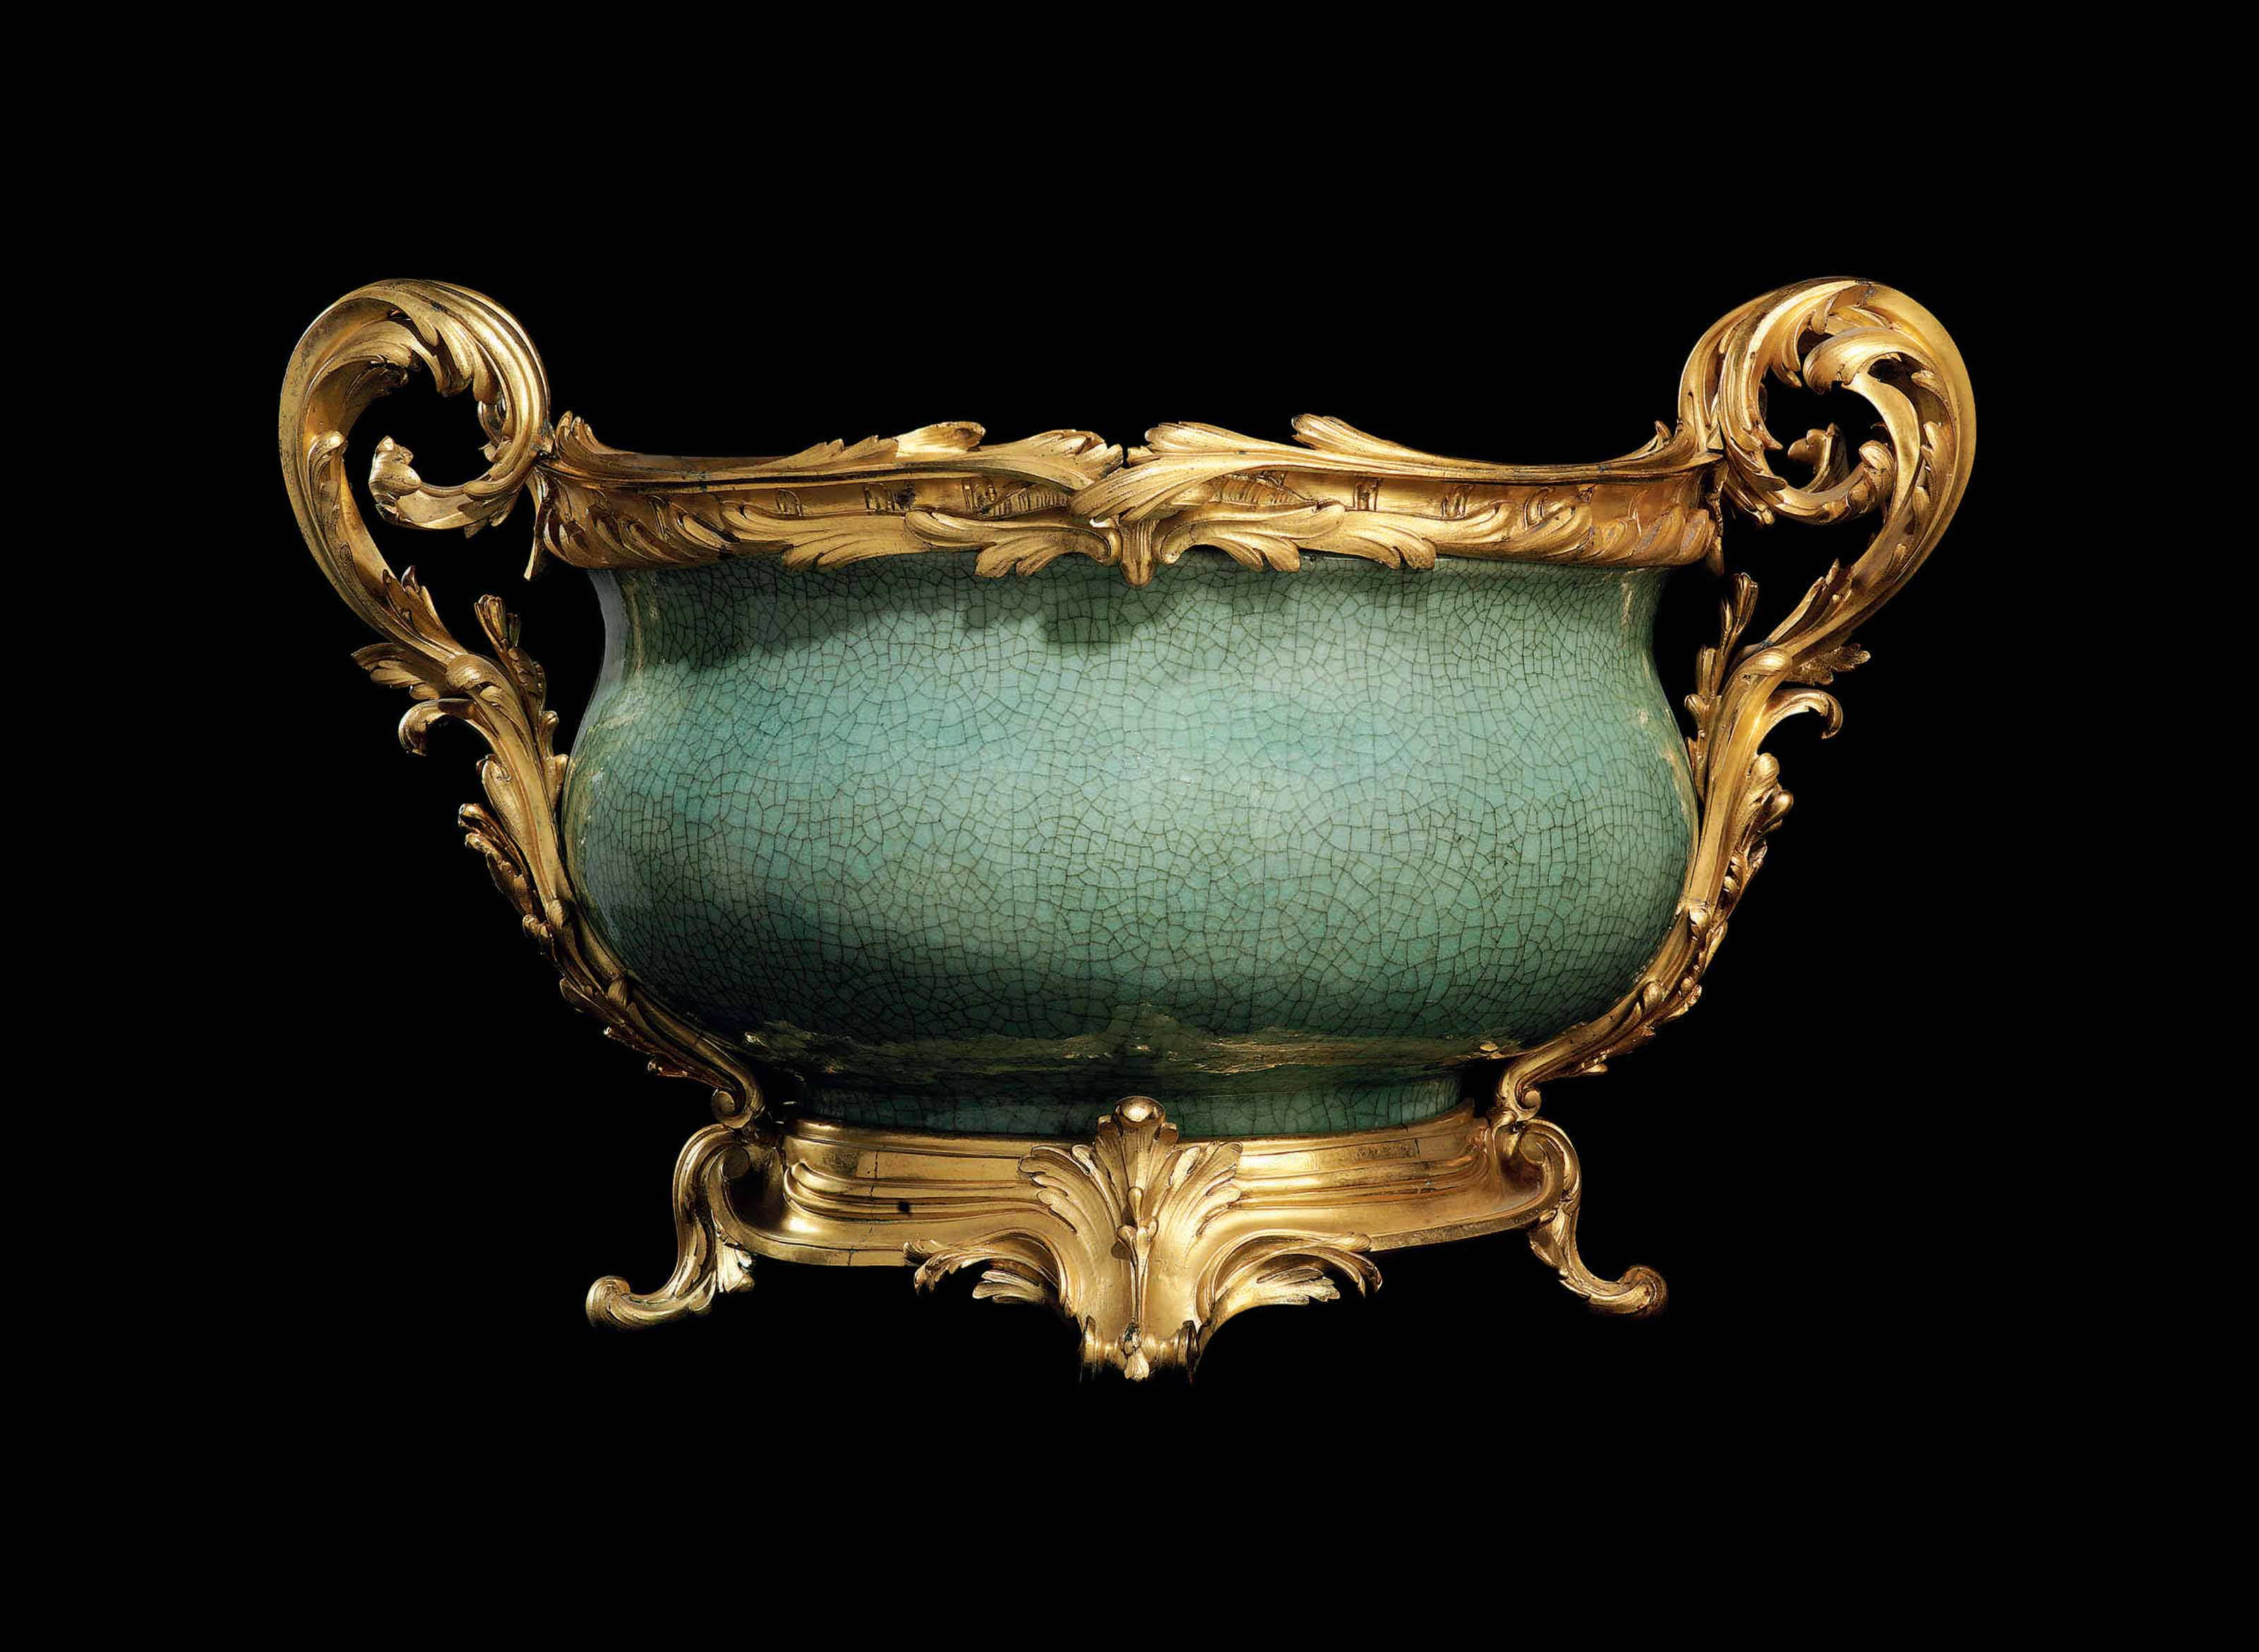 A LOUIS XV ORMOLU-MOUNTED CHINESE CRACKLE-GLAZED CELADON PORCELAIN BOWL OF EXCEPTIONAL SIZE